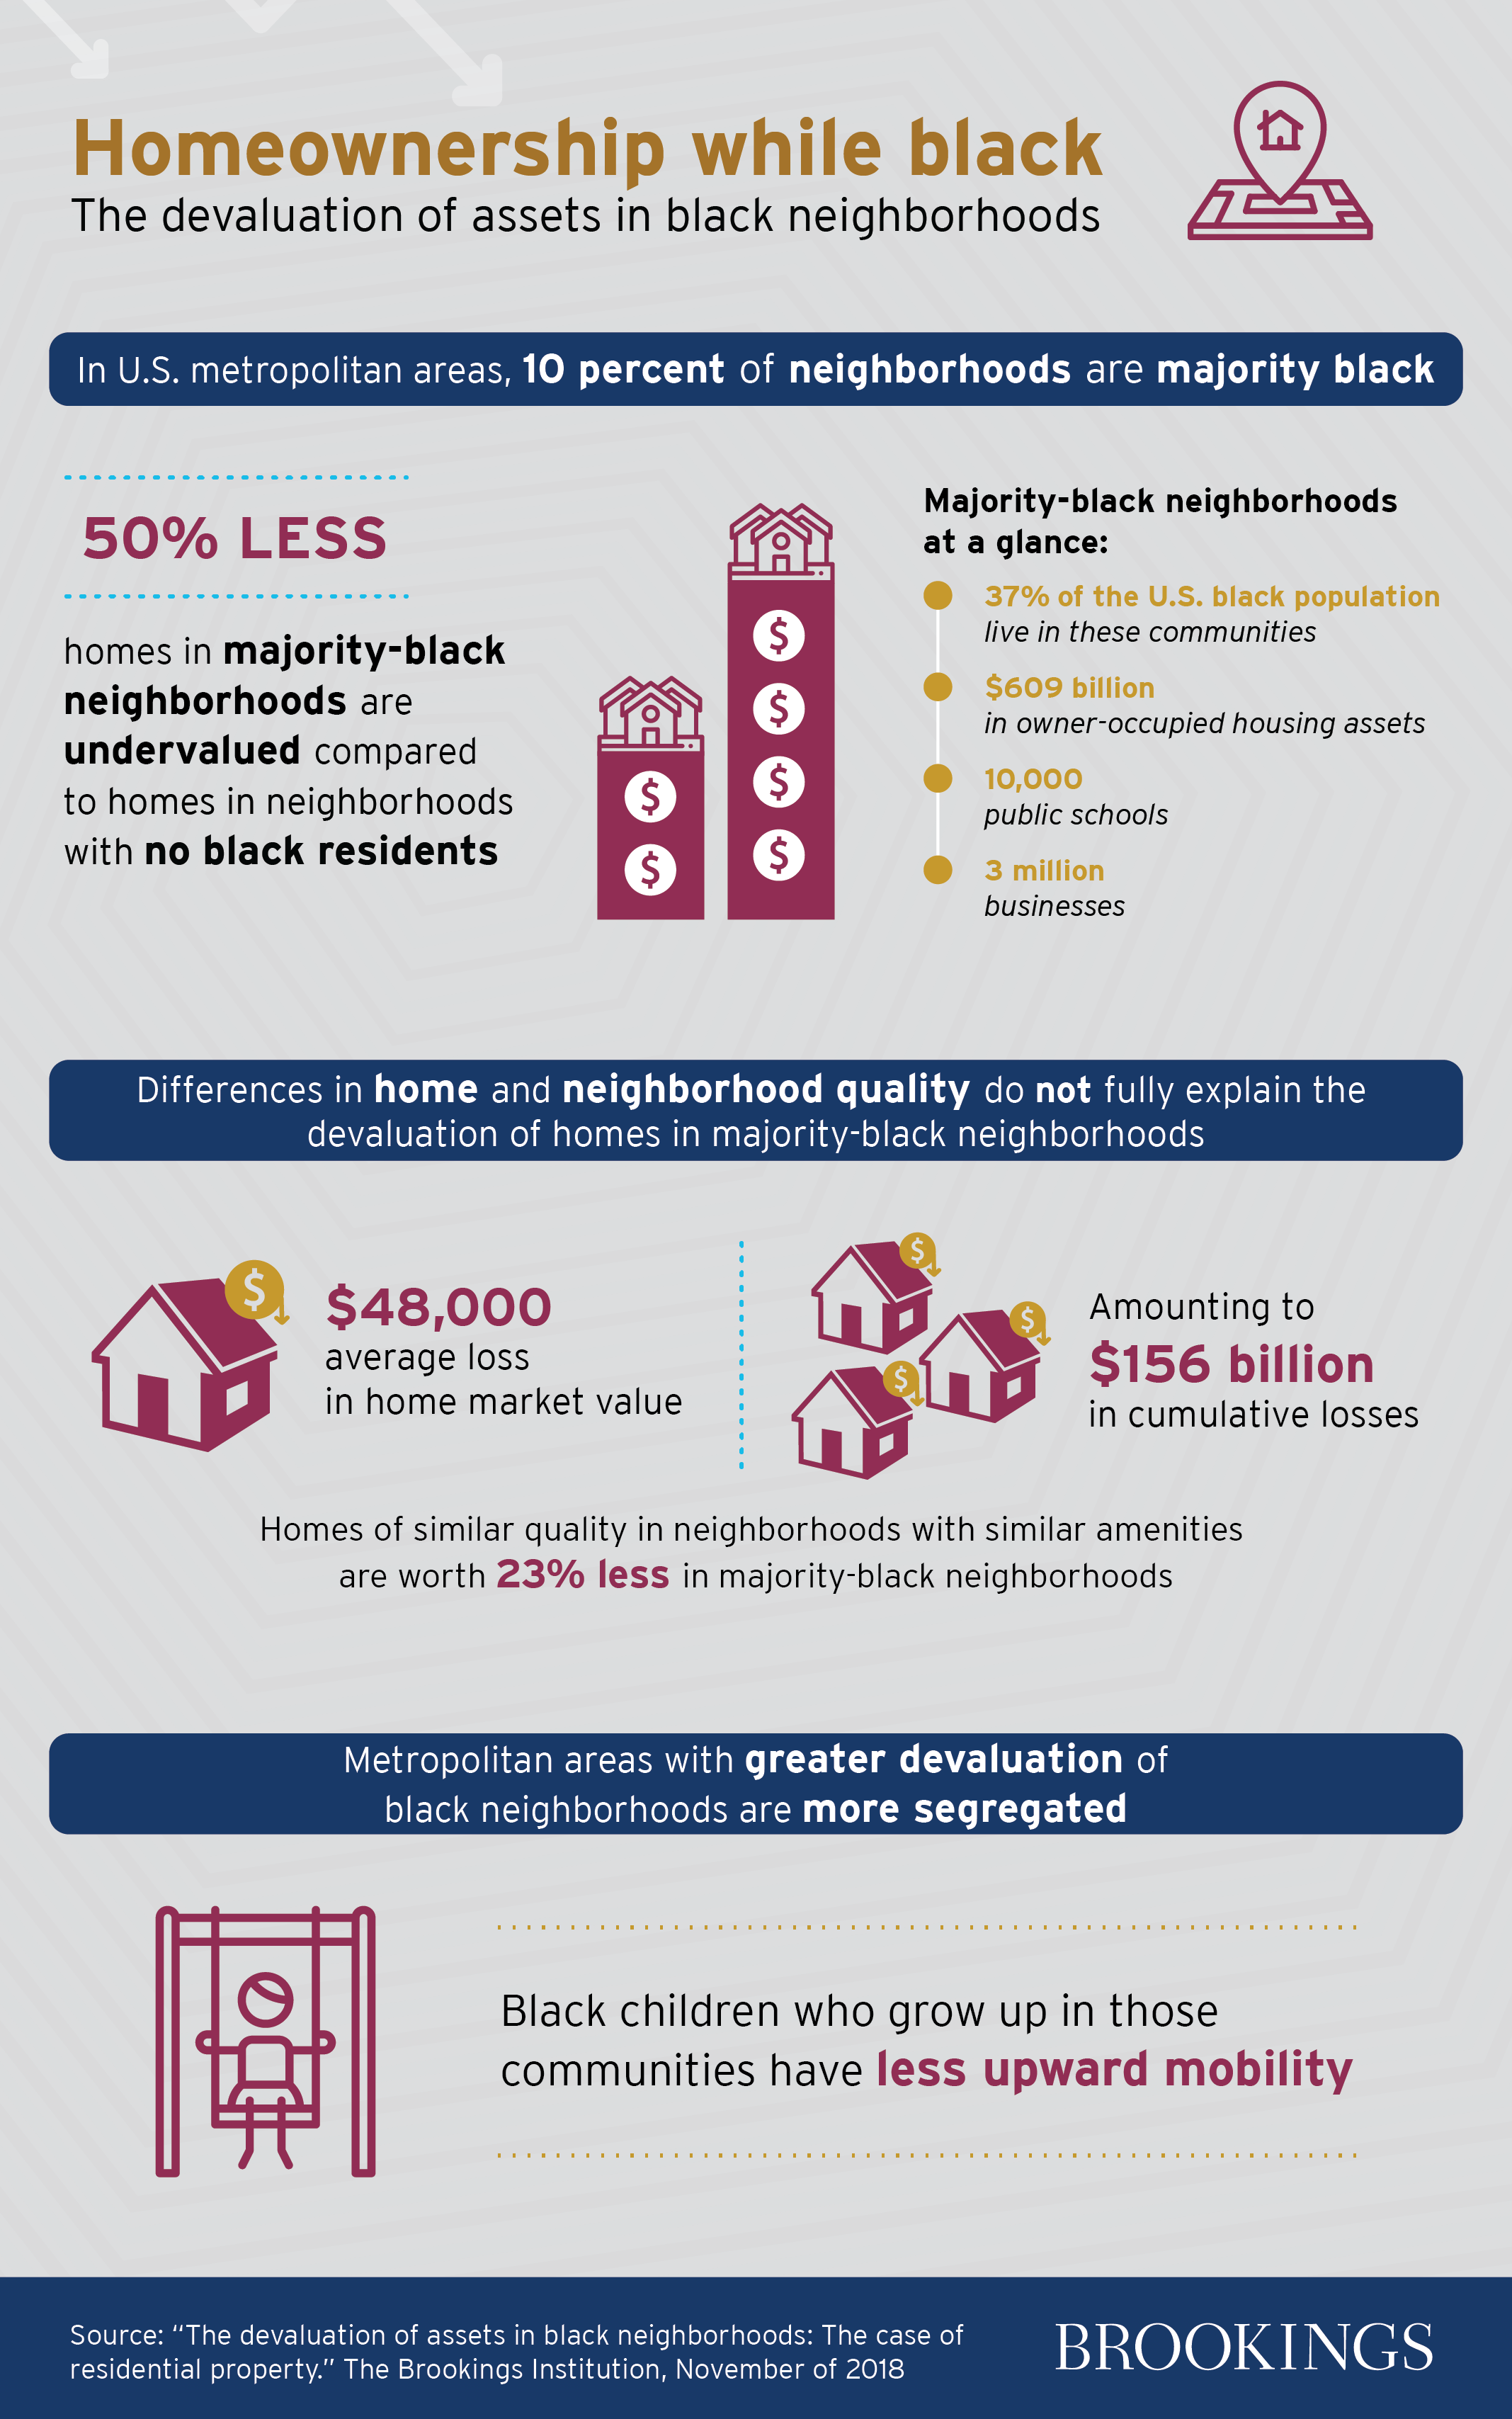 Brookings infographic. Visit source link at the end of the article for more information.